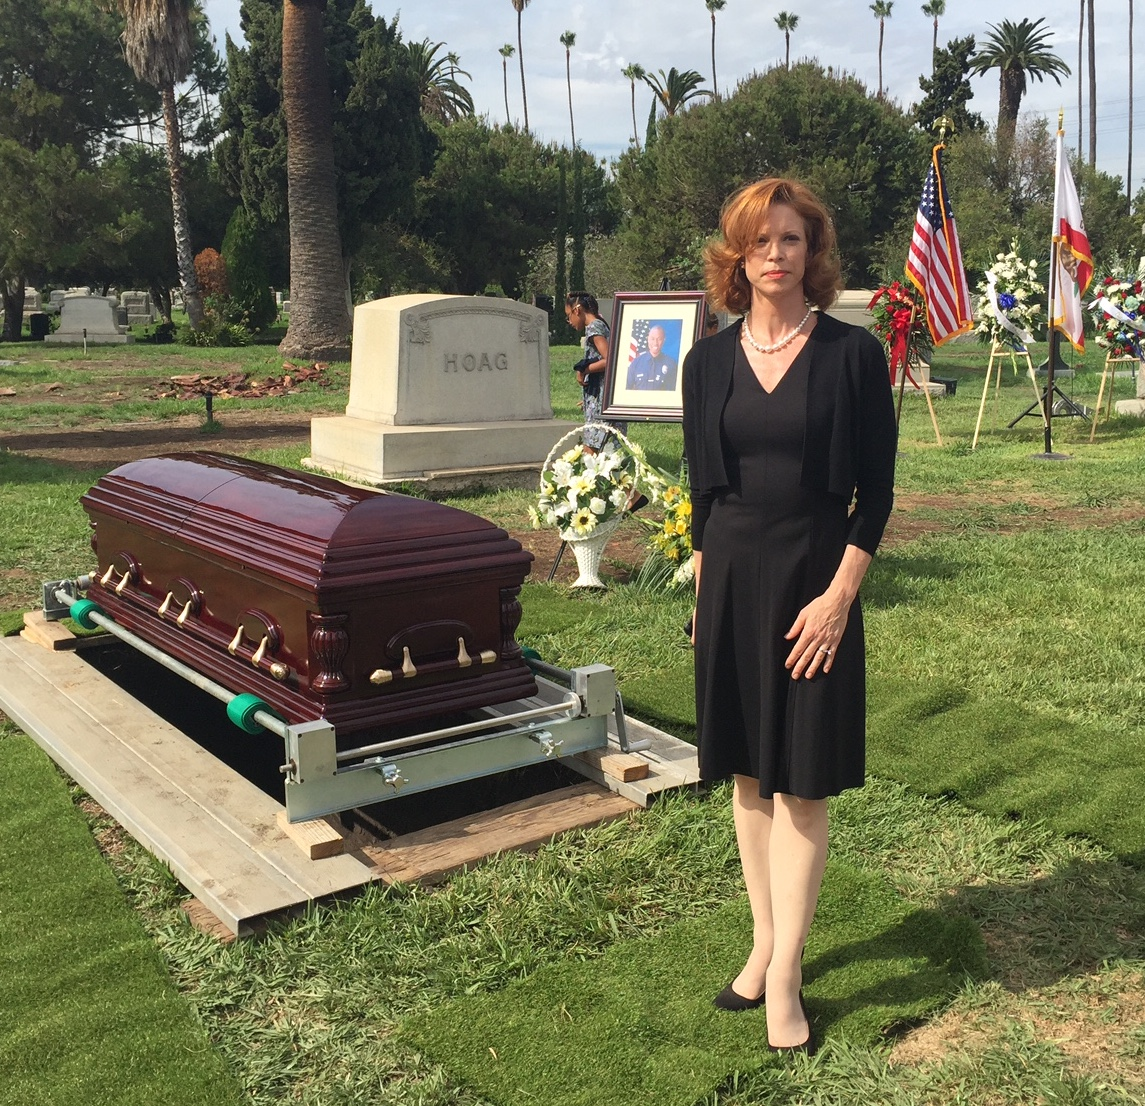 Here to honor the fallen, stand by my husband and .... where IS my husband? (insert sub text)